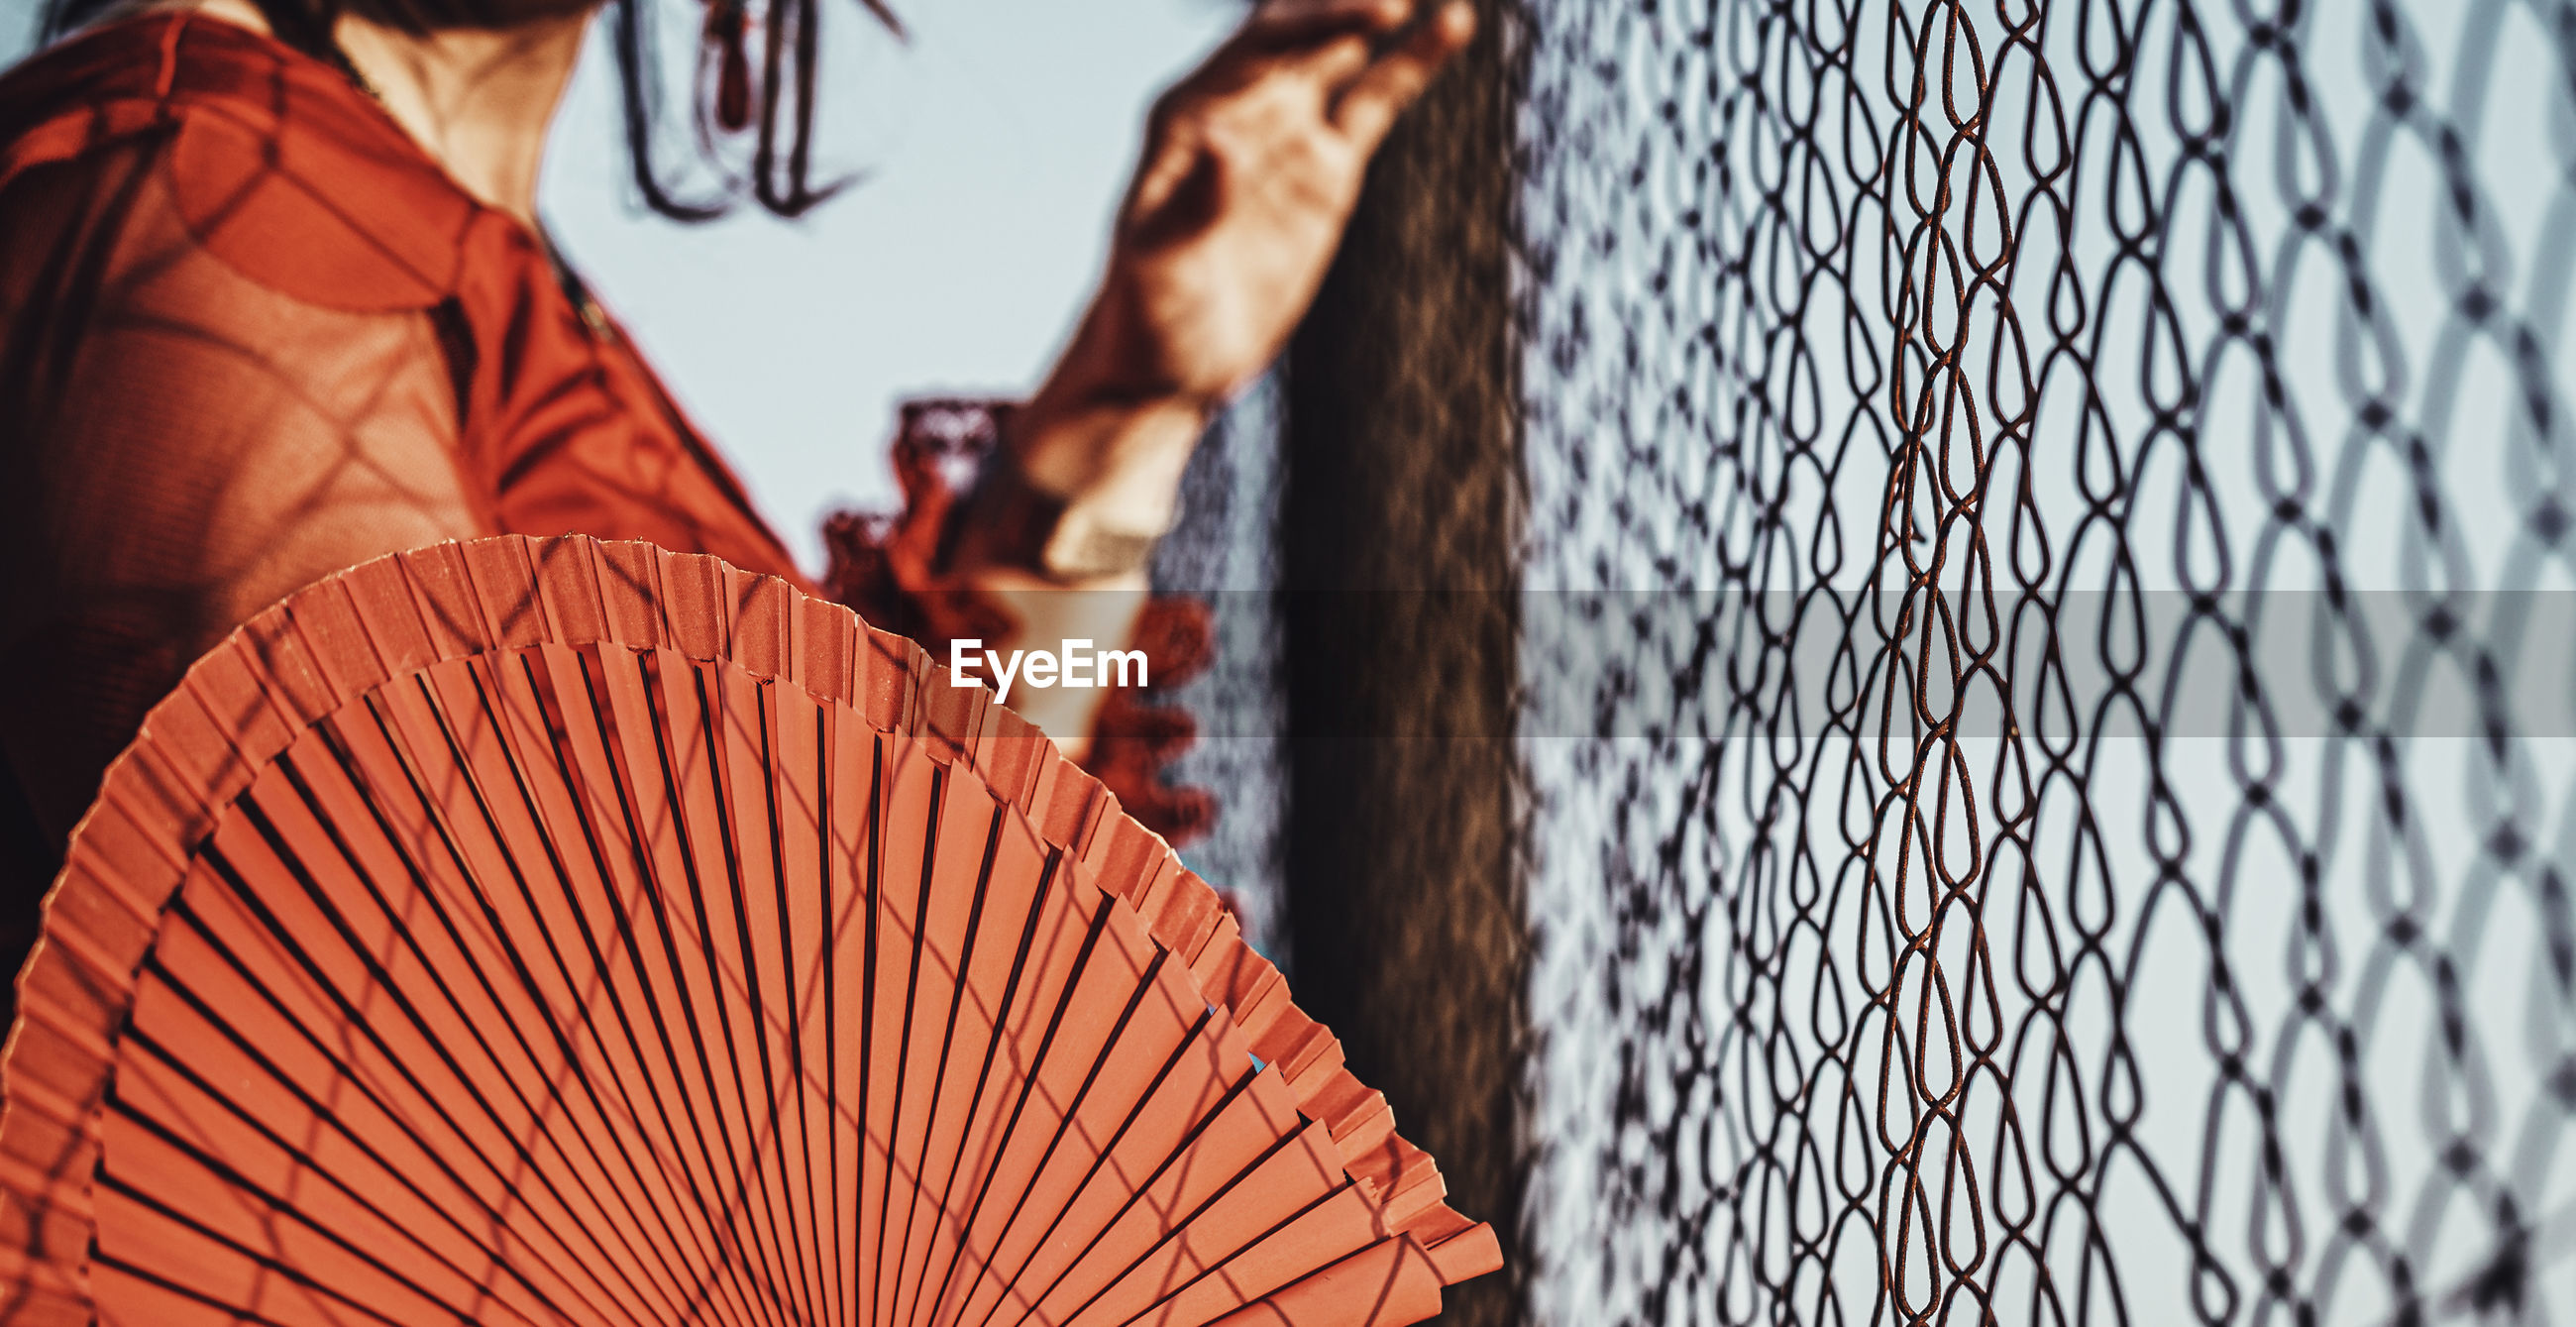 Midsection of woman holding hand fan by chainlink fence